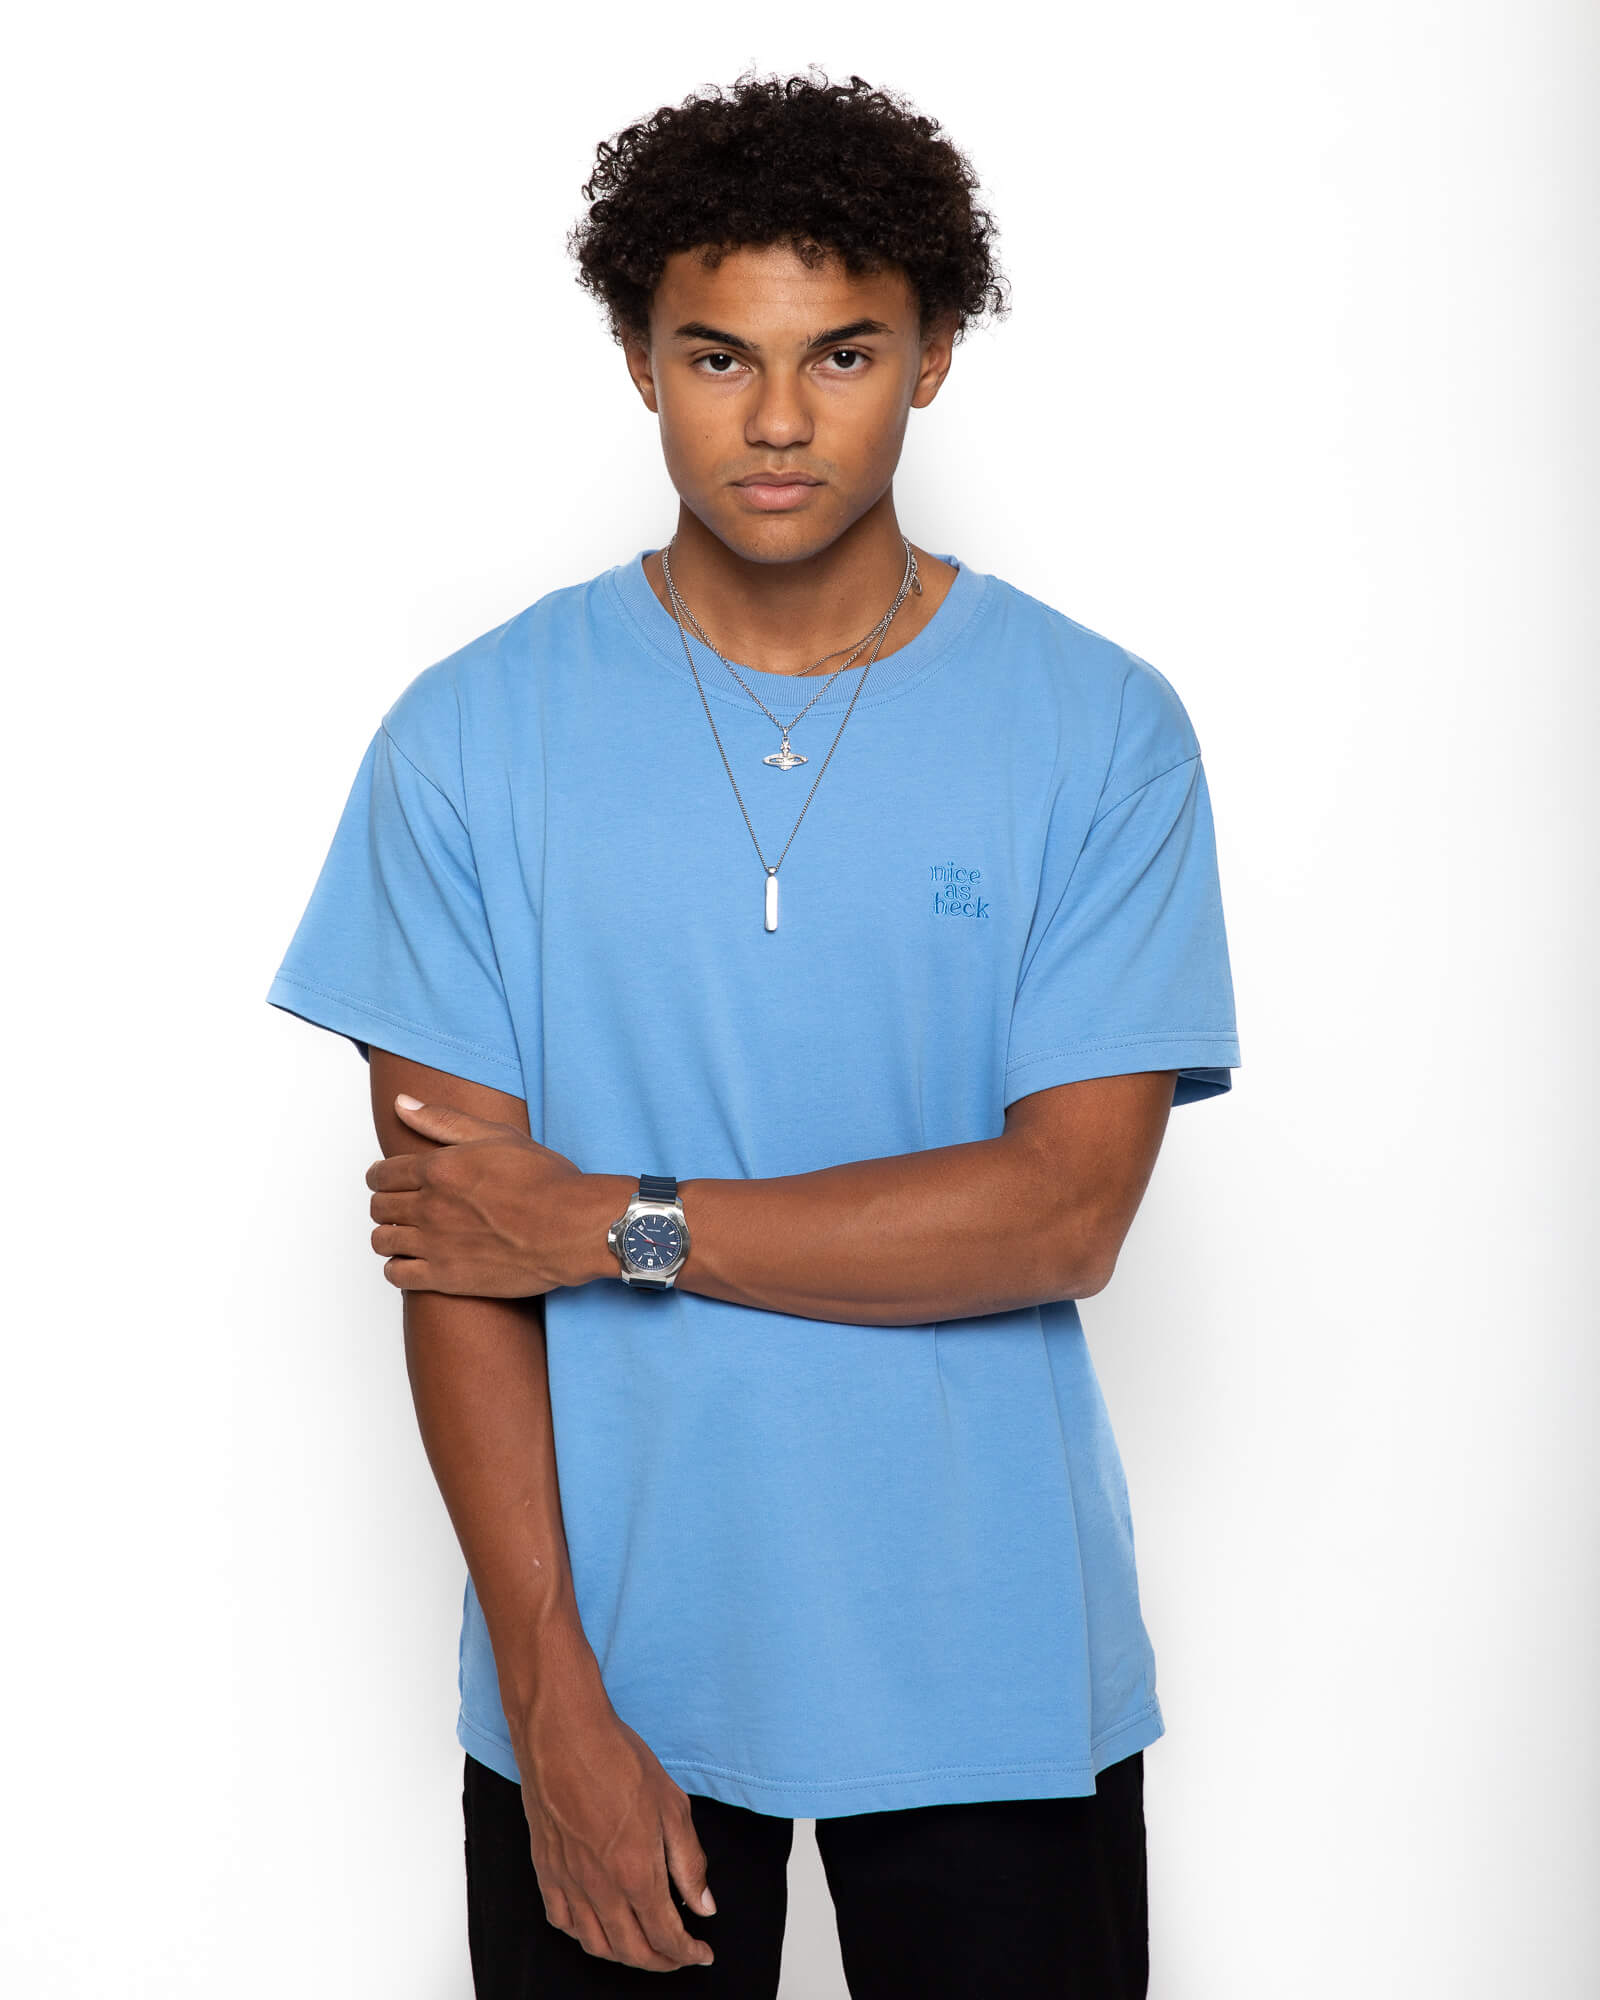 male model wearing the blue weekender tee and grabbing his right arm with his left arm